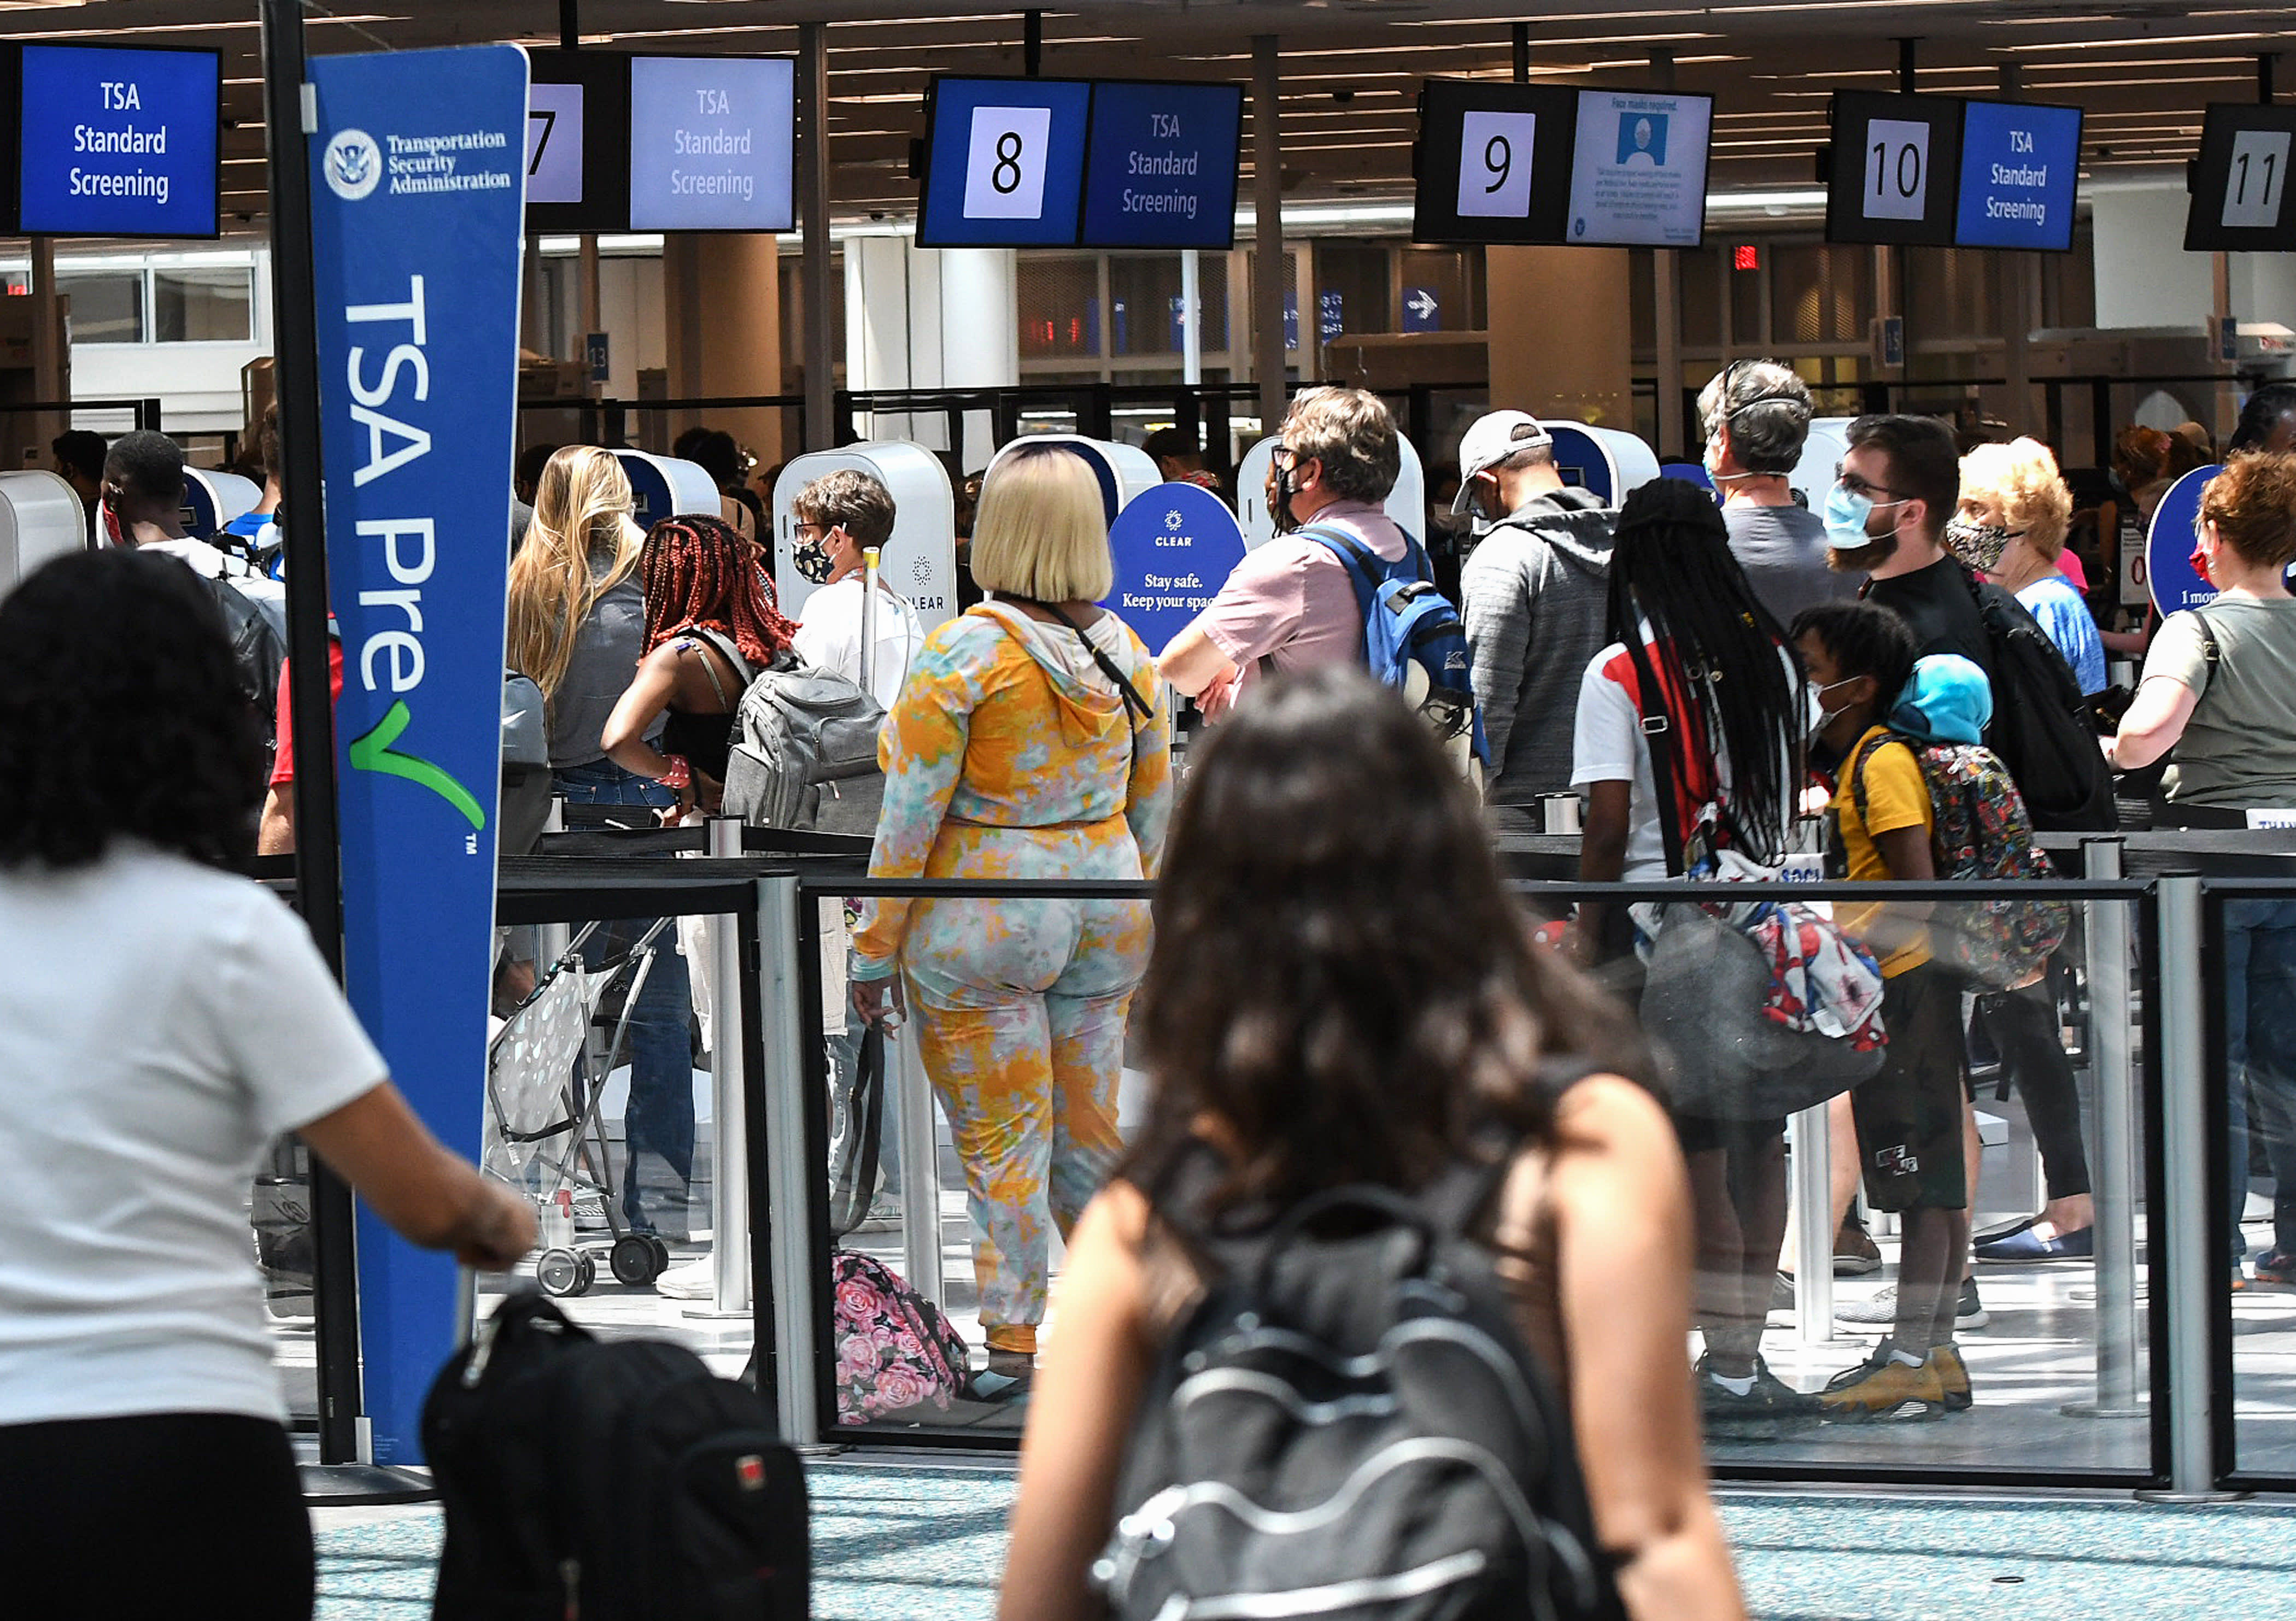 TSA screenings surpass 2019 levels in pandemic first as airlines, airports scramble to staff